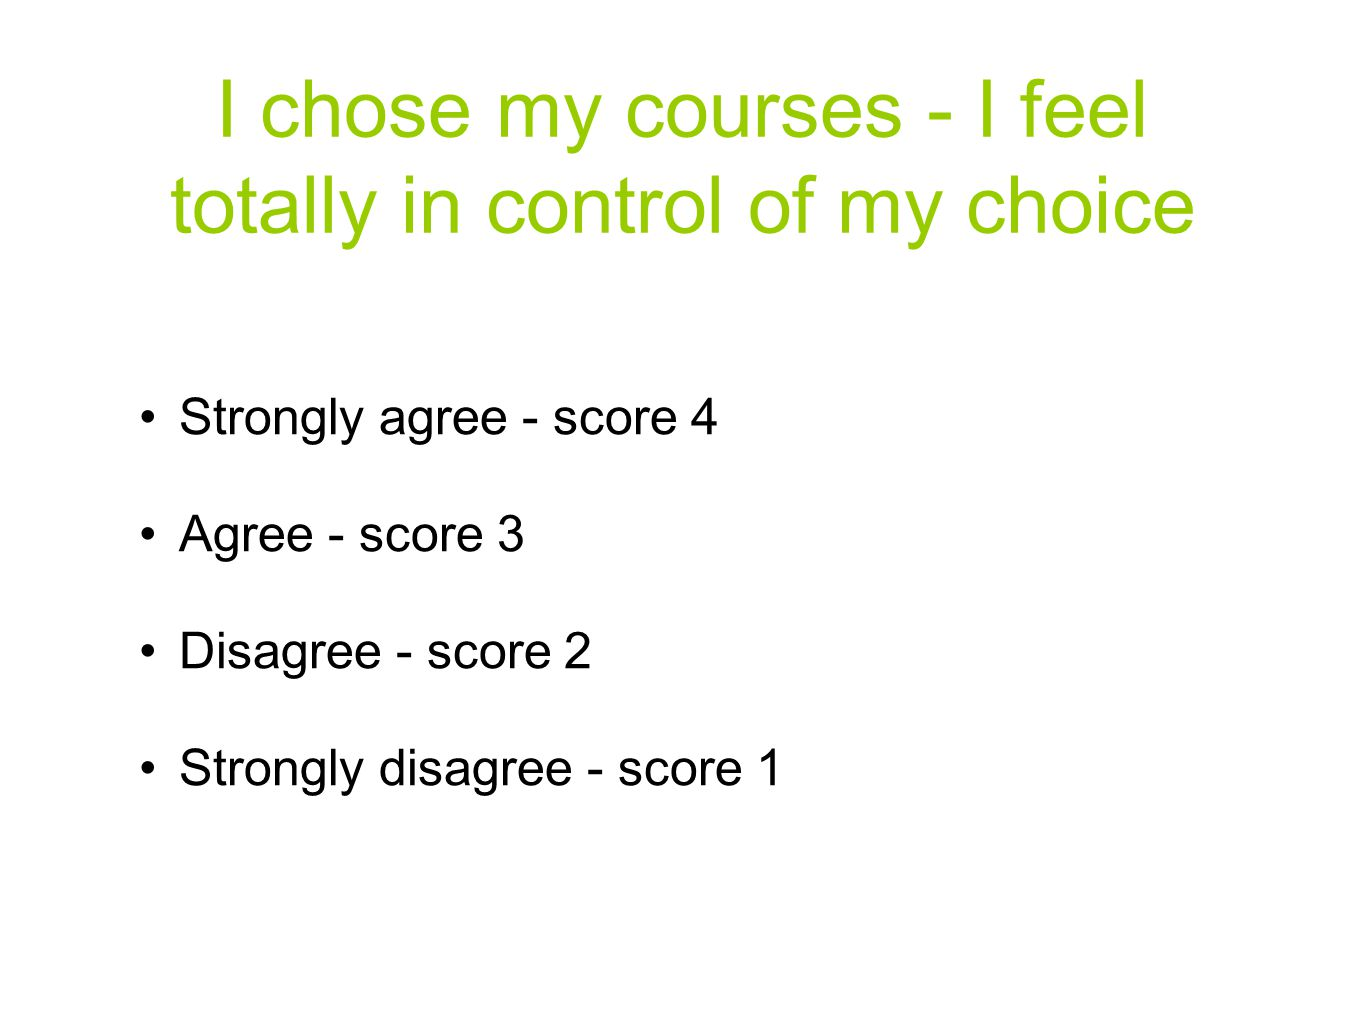 I chose my courses - I feel totally in control of my choice Strongly agree - score 4 Agree - score 3 Disagree - score 2 Strongly disagree - score 1